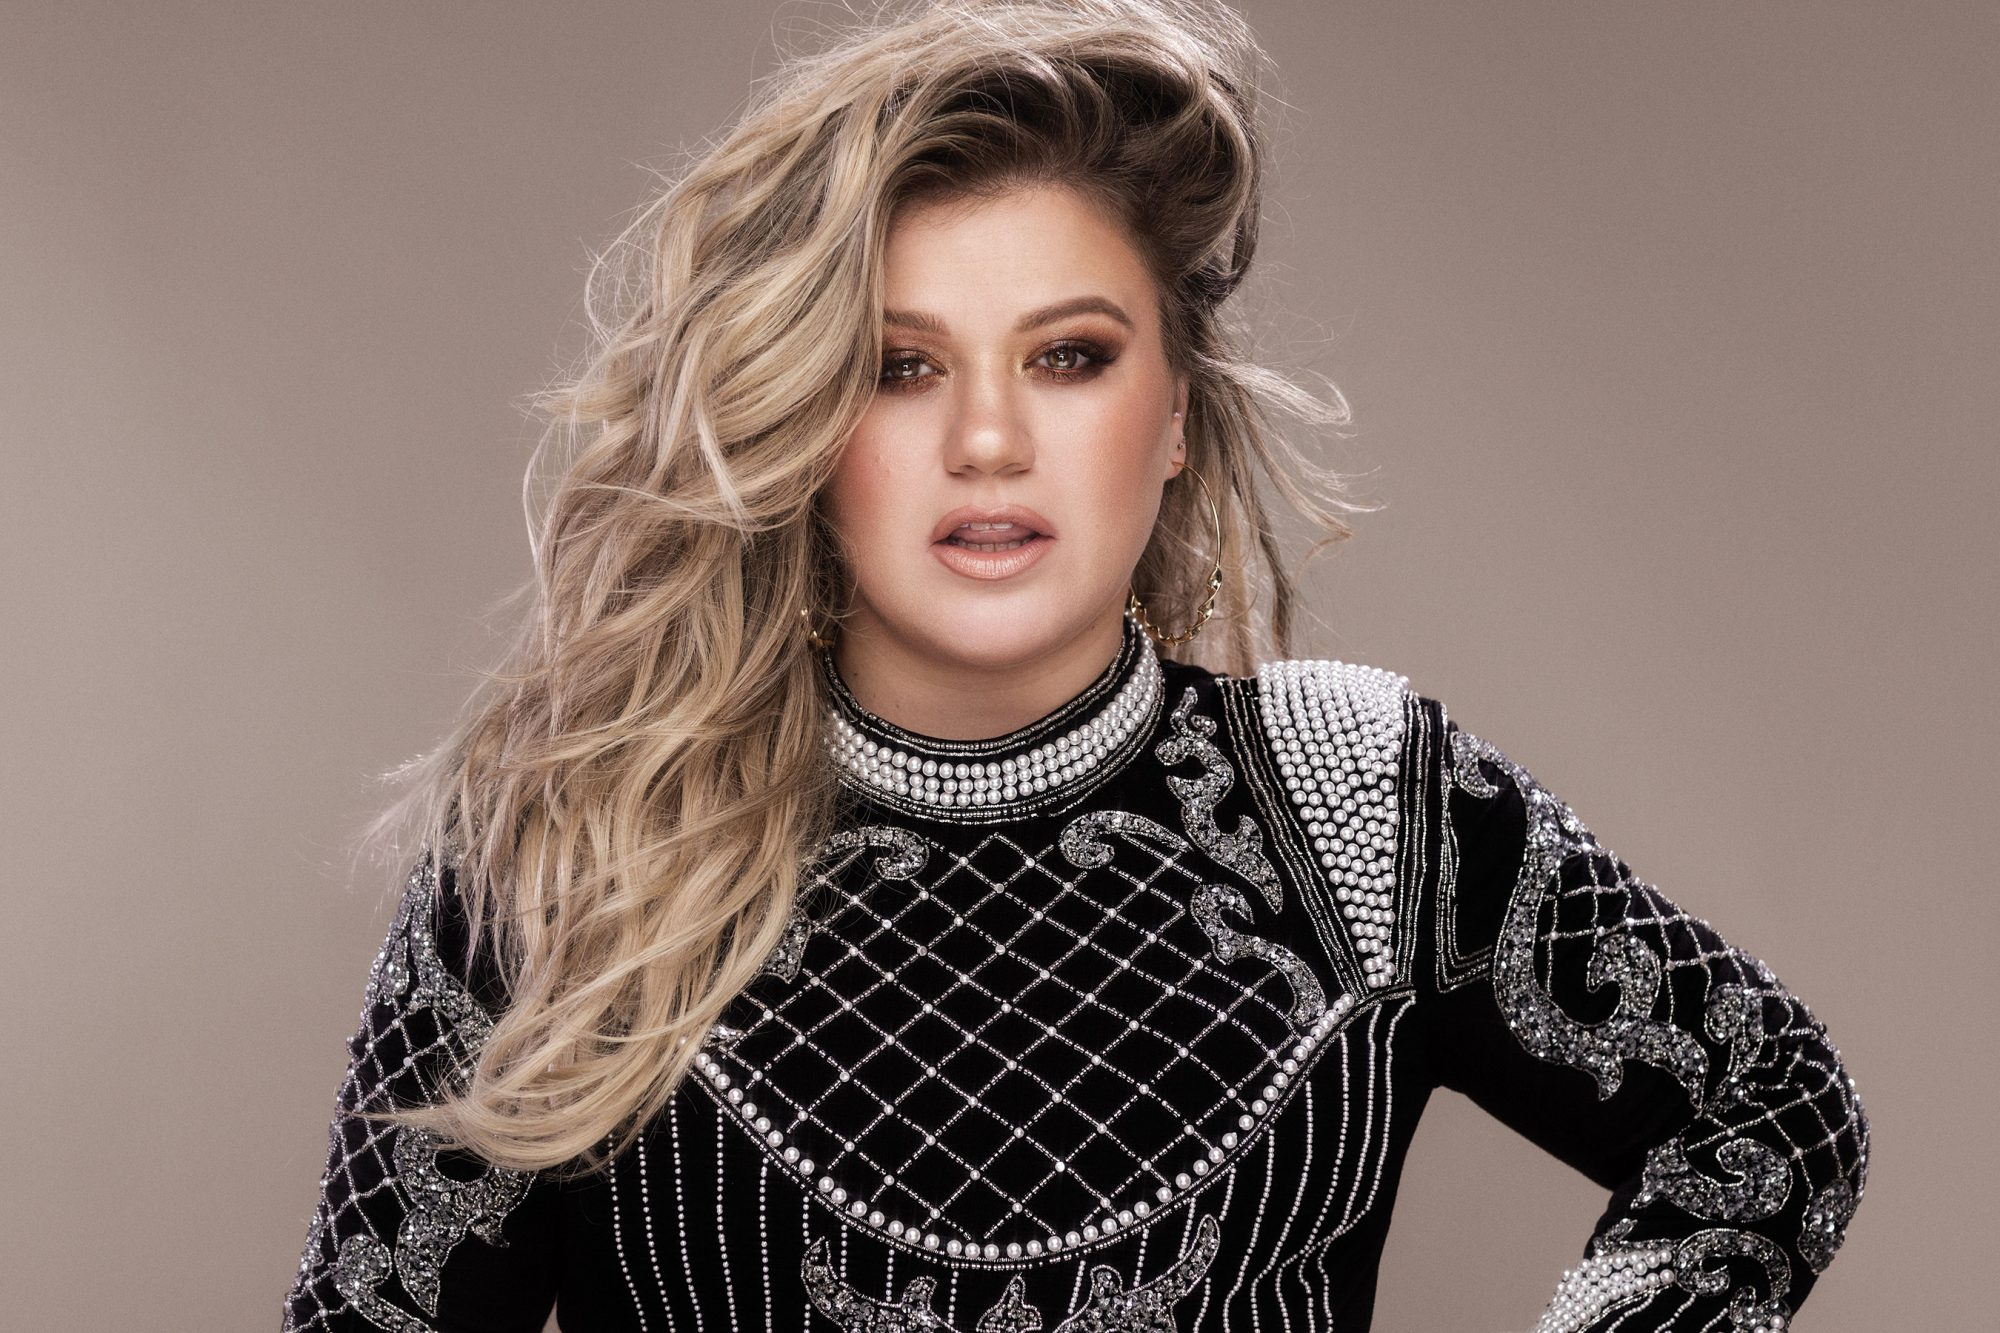 Kelly-Clarkson-005-high-res-credit-Vincent-Peters